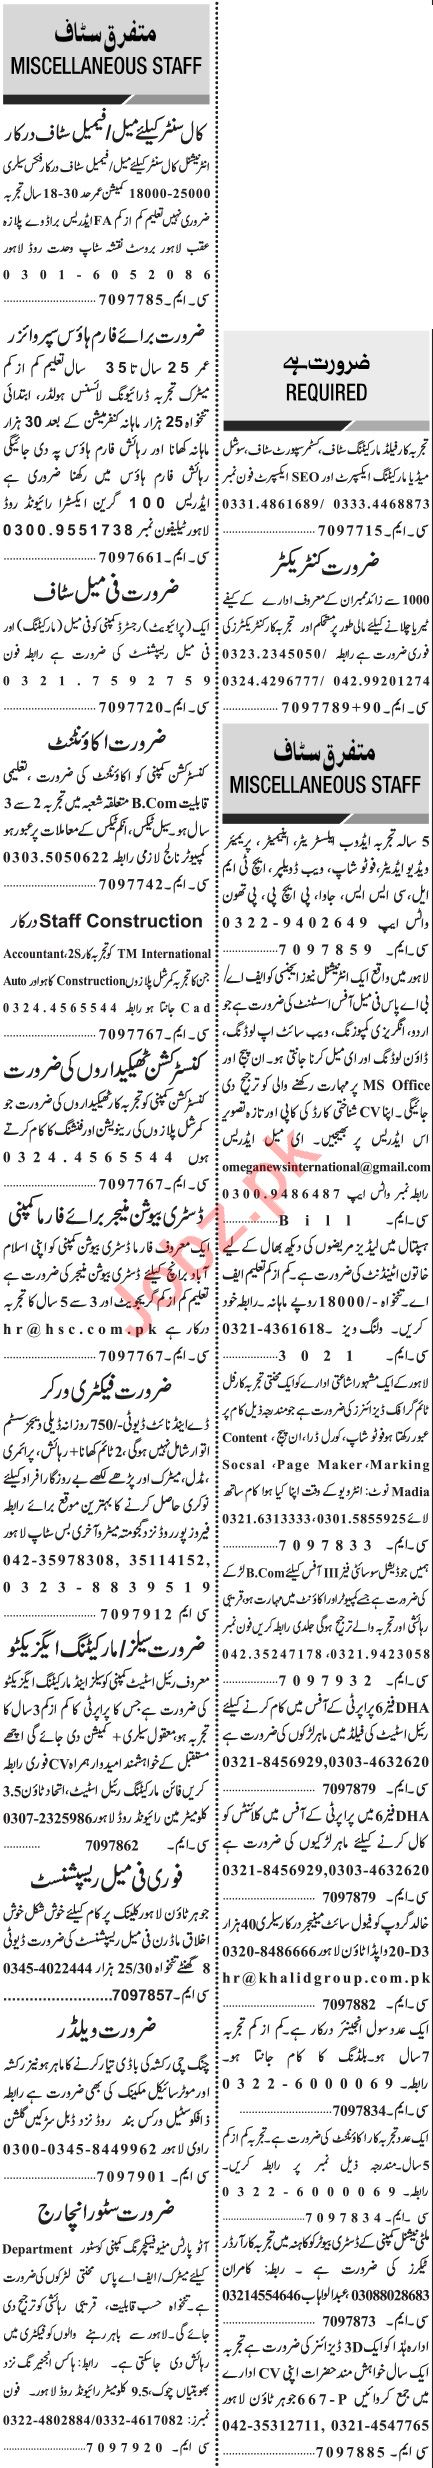 Jang Sunday Classified Ads 11 April 2021 for Multiple Staff